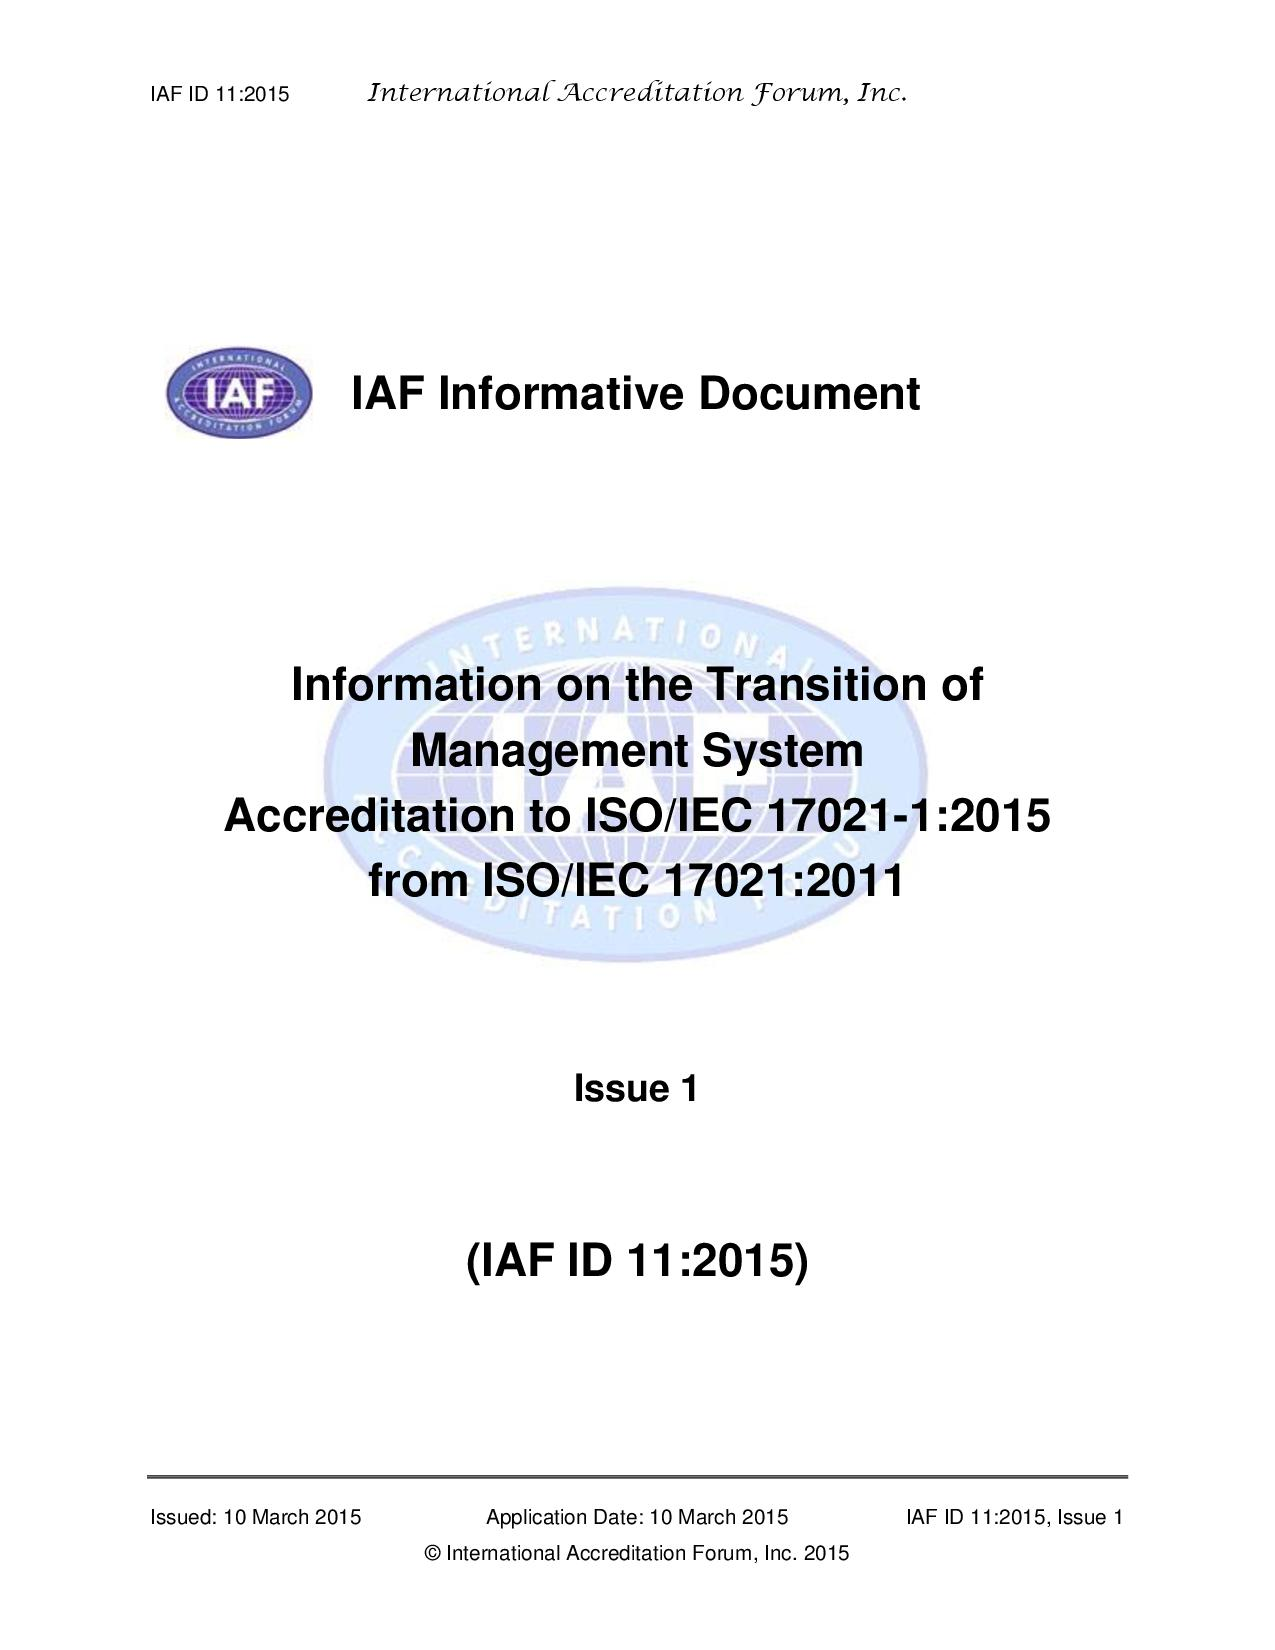 electronic document management system and accreditation